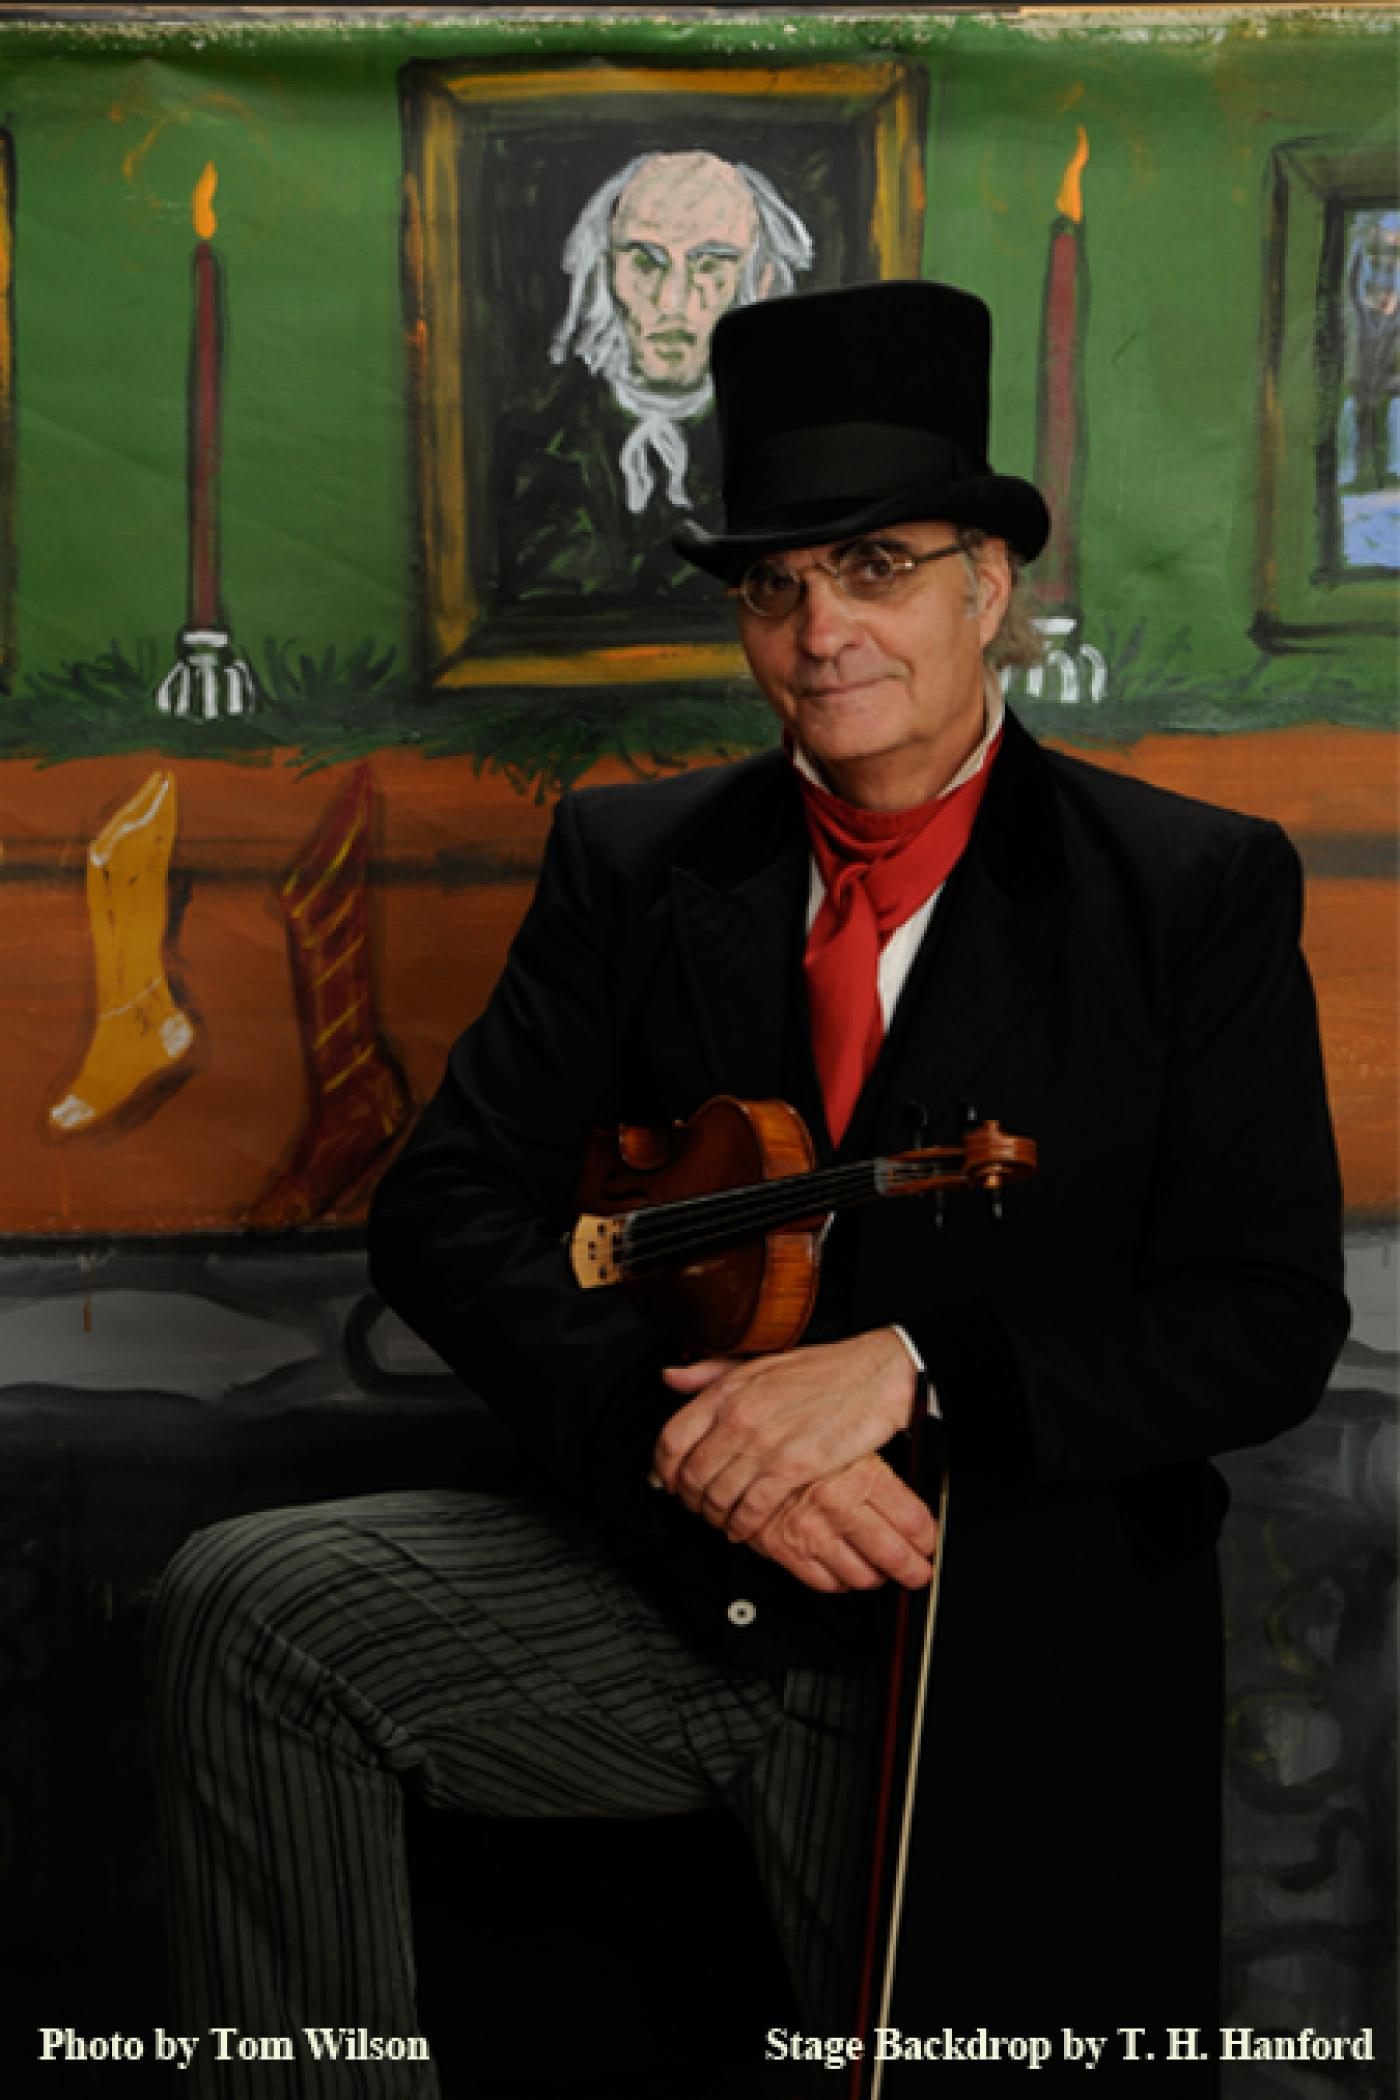 <h2>Museum Holiday Open House Old Christmas and Winter Traditions of Long Ago</h2> <p>Join musician